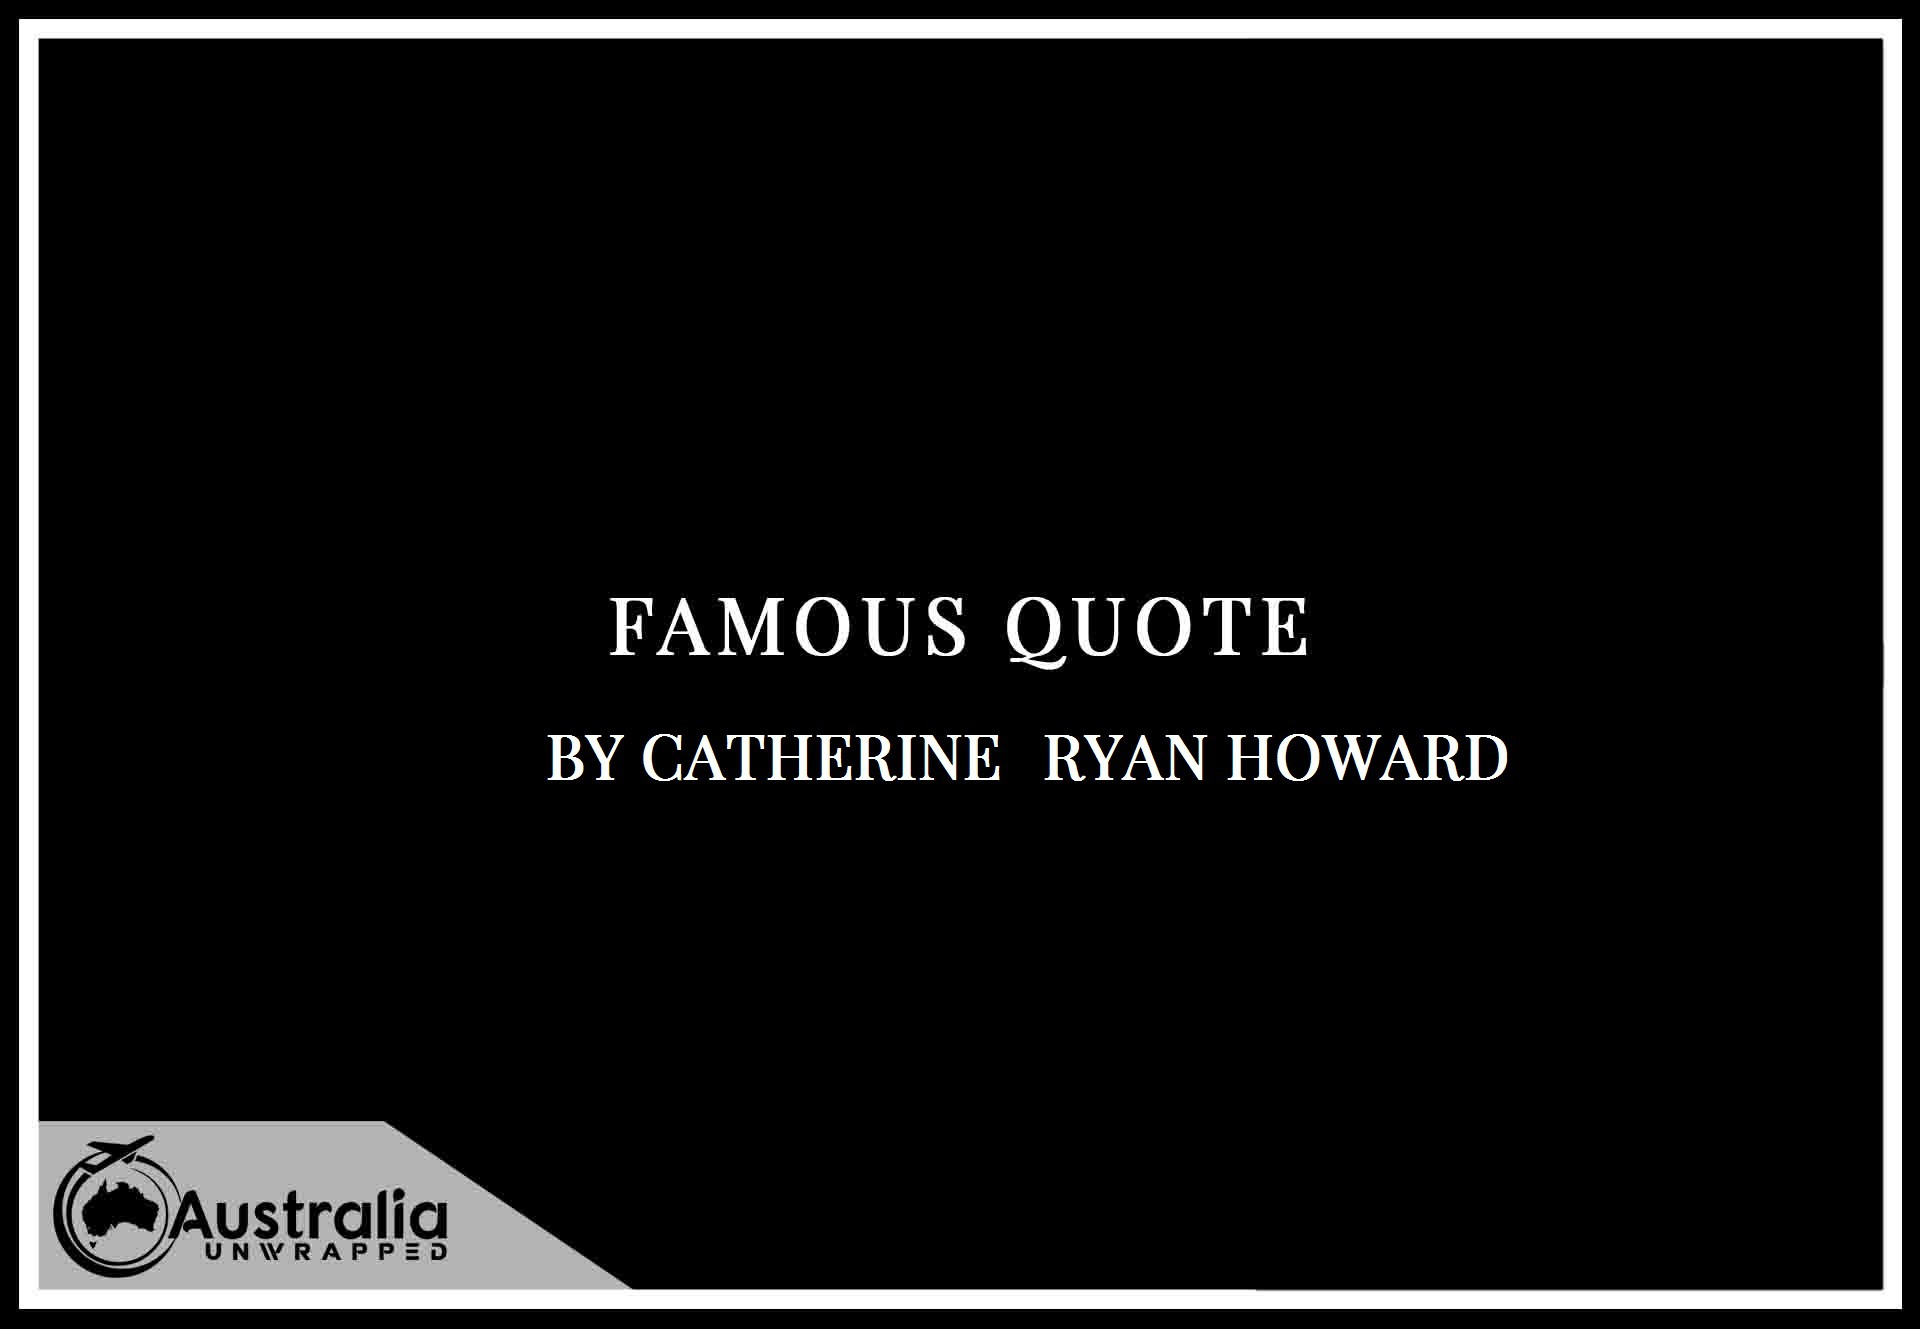 Catherine Ryan Howard's Top 1 Popular and Famous Quotes